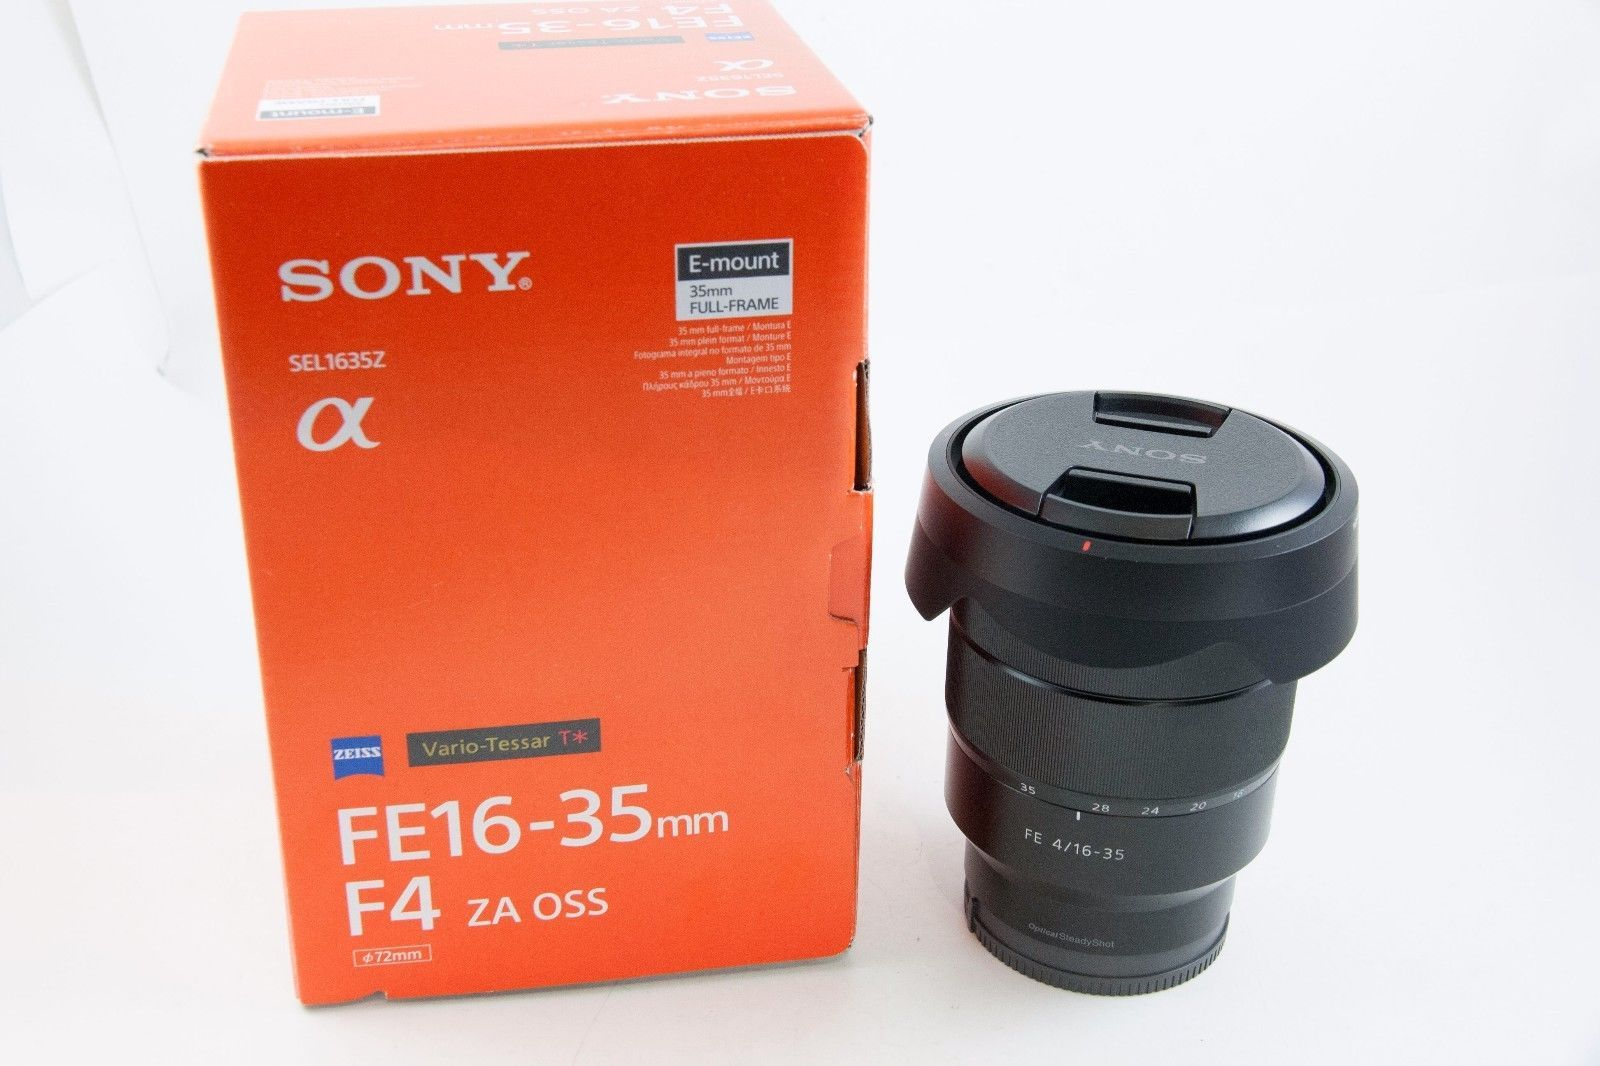 Sony Carl Zeiss Vario Tessar Fe T 16 35mm F 4 Za Oss Lens Sel1635z Zeiss Electronic Products Oss